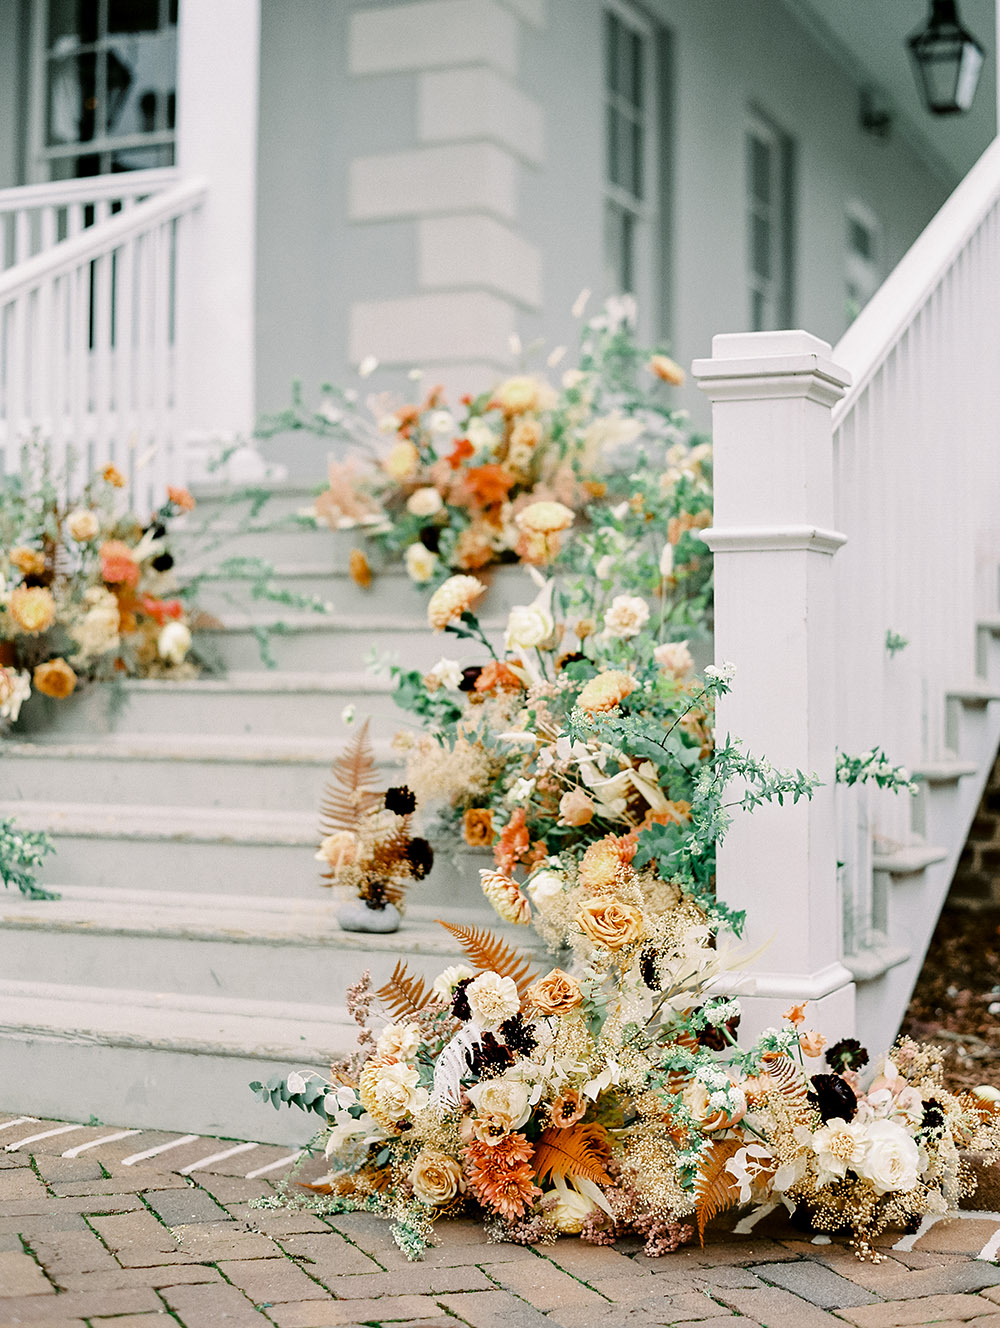 Juniper & Jasmine Floral Design created lush floral arrangements within Pure Luxe Bride's neutral, terracotta color palette for this editorial.